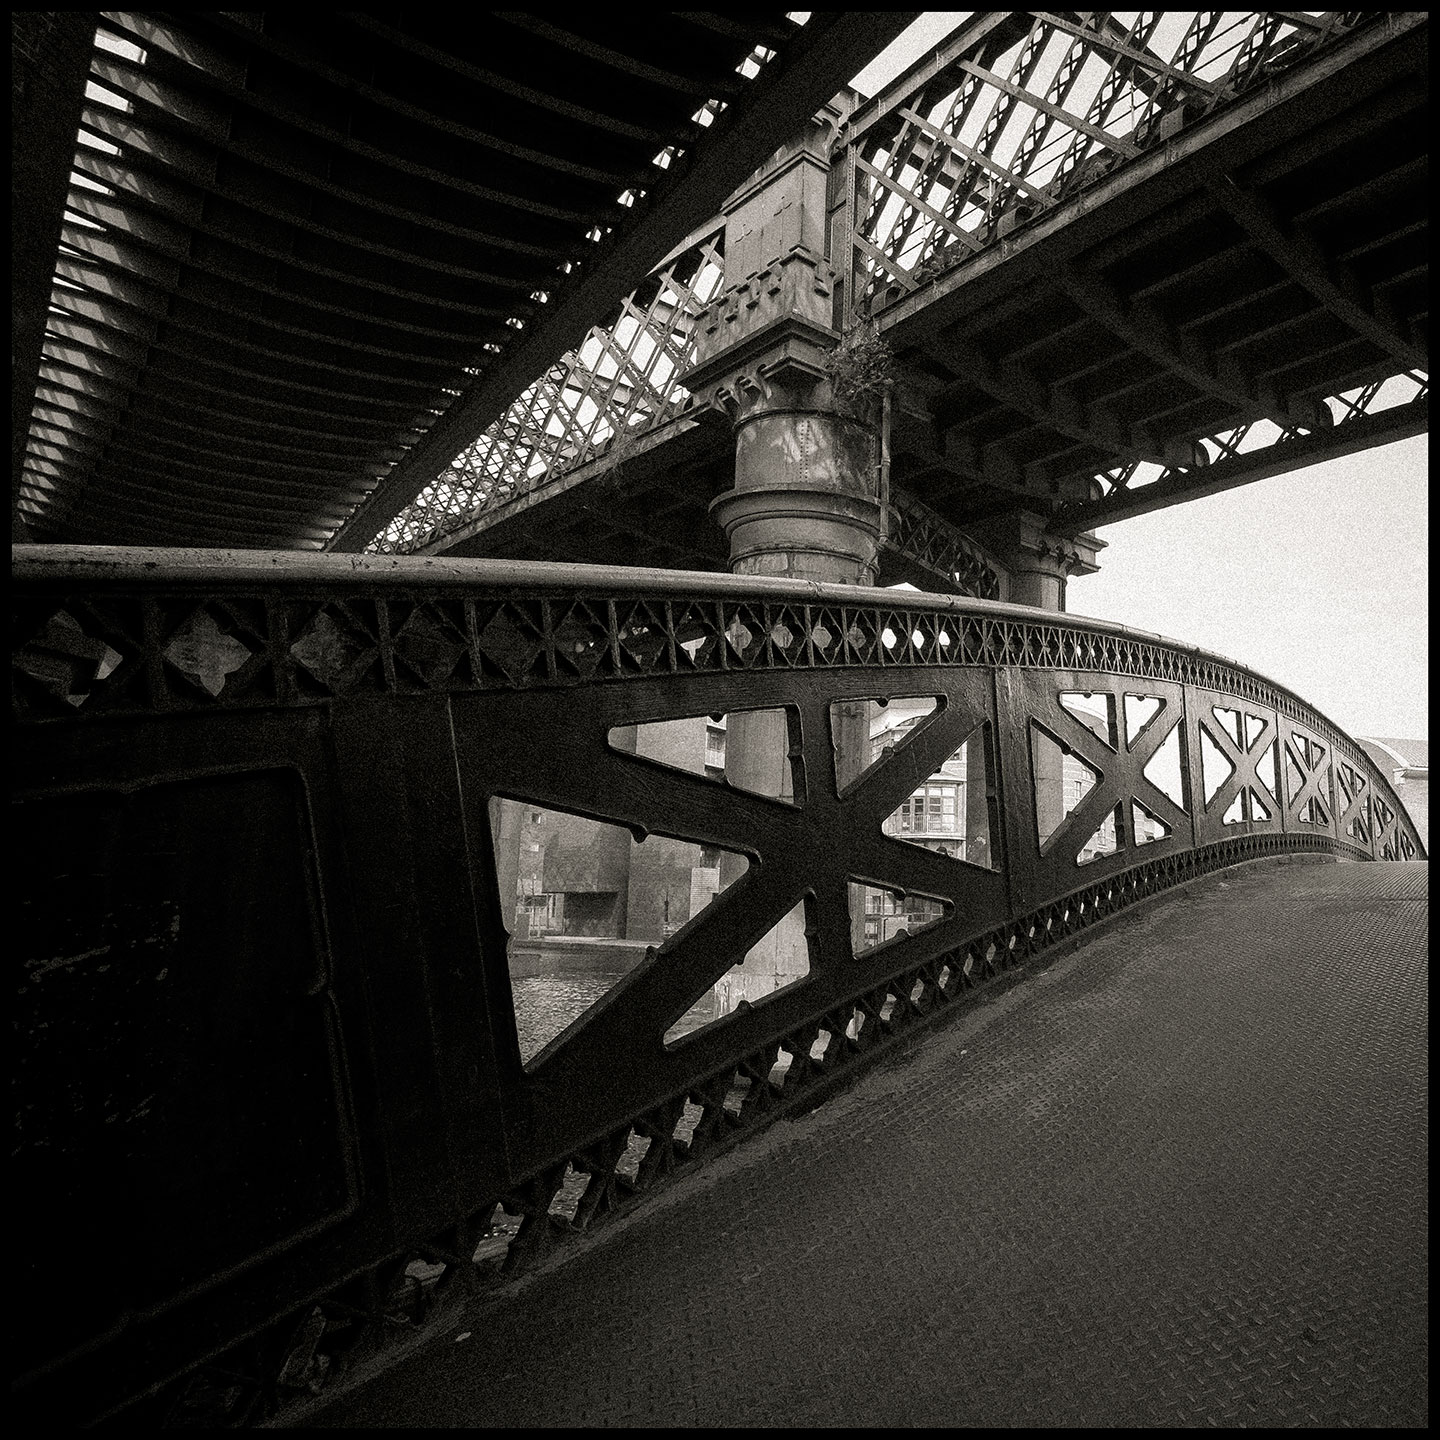 Bridges, tram, foot and train, Castlefield. More from the Manchester collection.